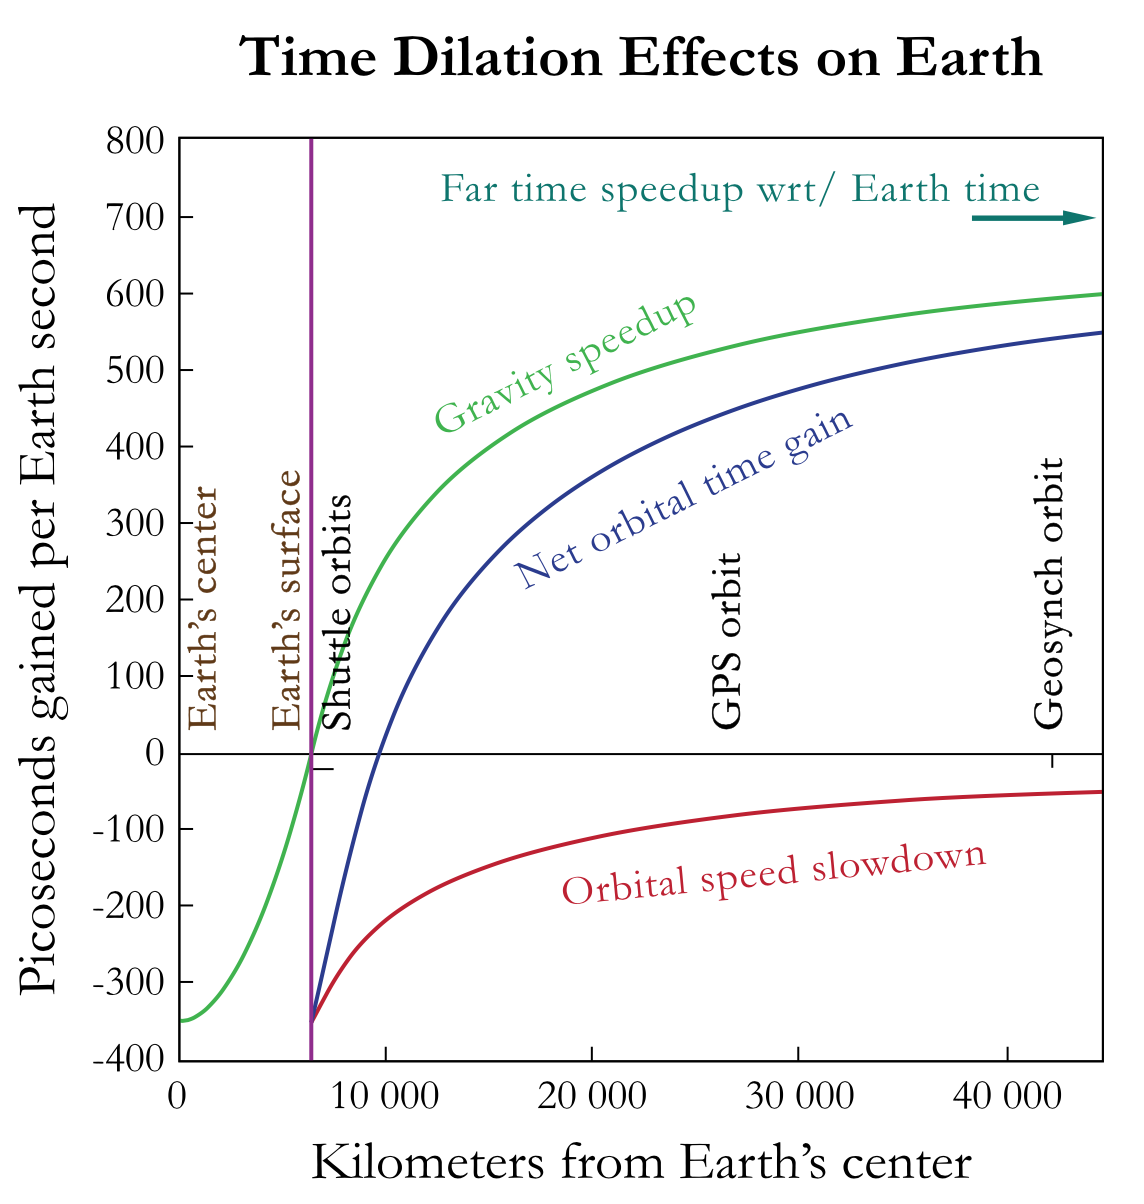 The speedy motion of a satellite in space slows down its clocks relative to ours on earth, while its distance out of the earth's gravitational well makes satellite clocks go a bit faster. Thus shuttle pilots age less than a couch potato at the south pole, while geosynchronous orbiters (as well as interstellar dust particles) age more rapidly. This also means that the surface of the earth may be more than a year older than the earth's center, assuming that both were formed at the same time. Although the resulting errors in satellite timing are measured in nanoseconds, lightspeed is 30 centimeters (1 foot) per nanosecond so that the combined effects can result in GPS errors as large as 15 meters if not taken into account. Image credit: wikimedia user P. Fraundorf, CC BY SA 3.0